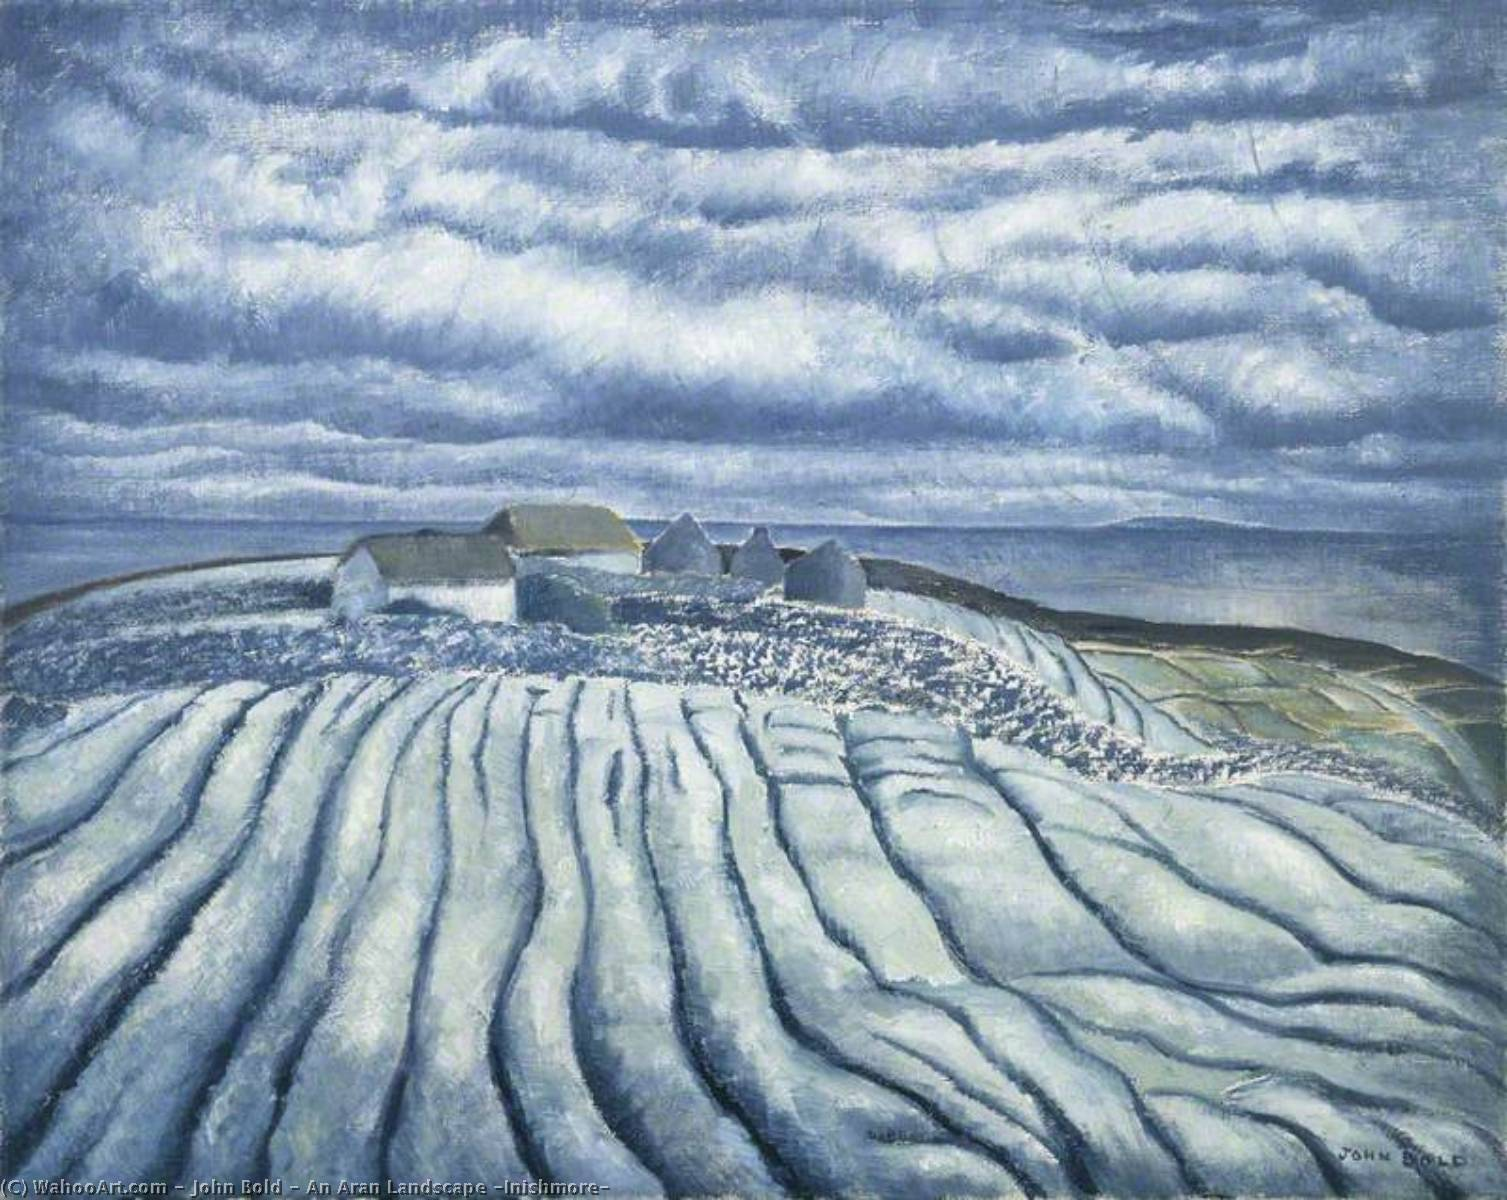 An Aran Landscape (Inishmore) by John Bold | Oil Painting | WahooArt.com